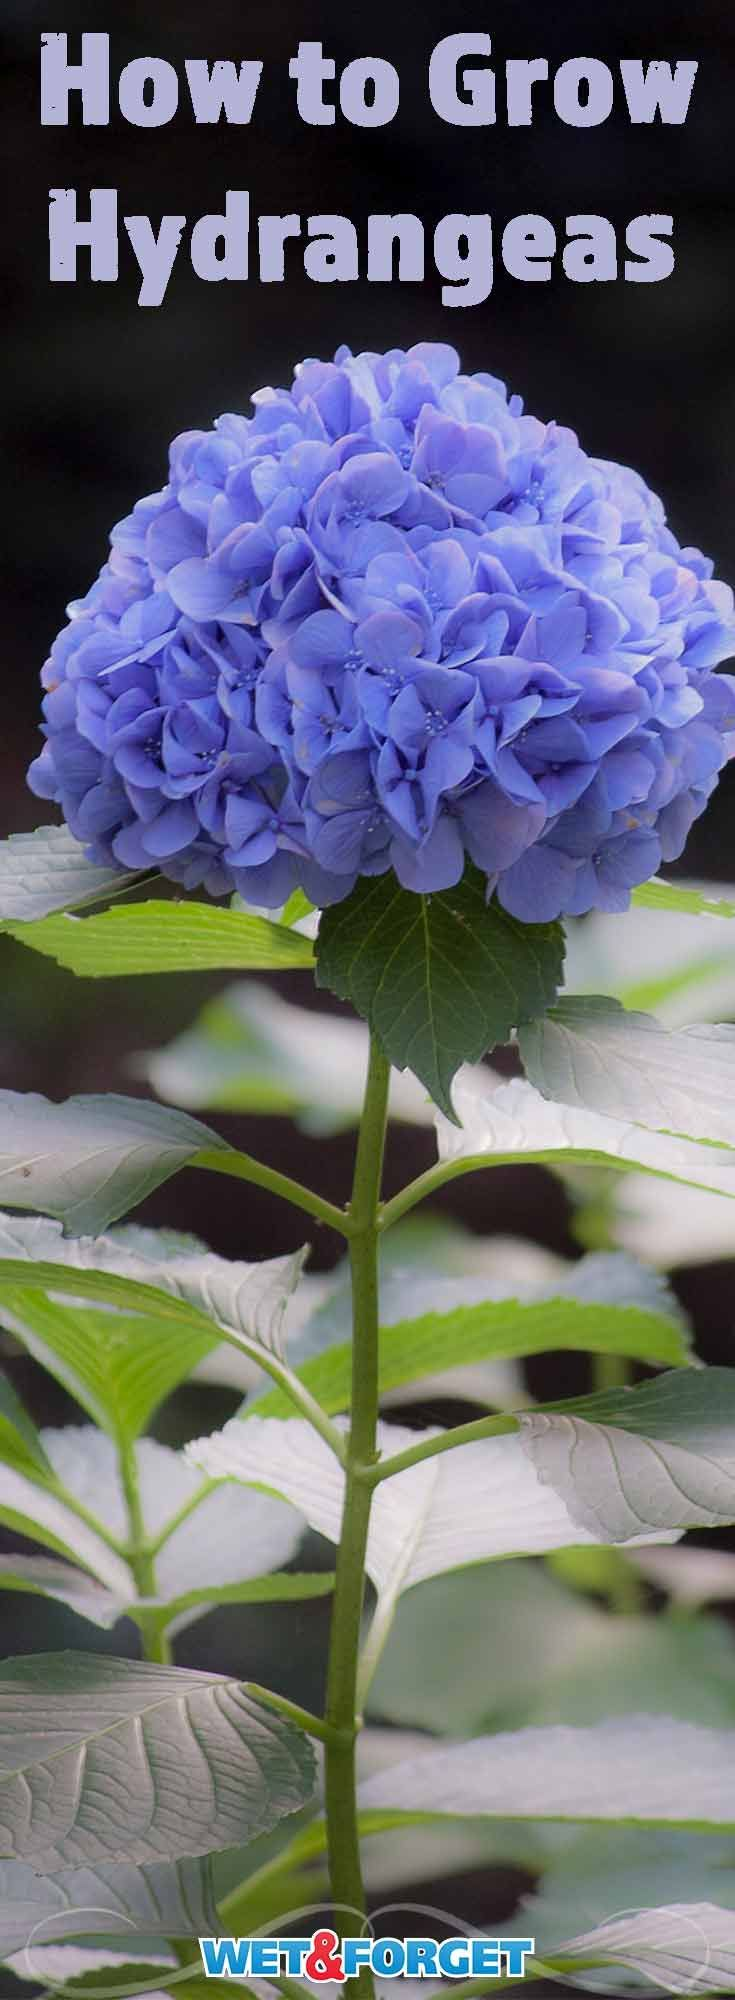 The vivid colors and velvety leaves make hydrangeas one of the most popular flowers. Learn how to grow hydrangeas and take care of them with our top tips and tricks!